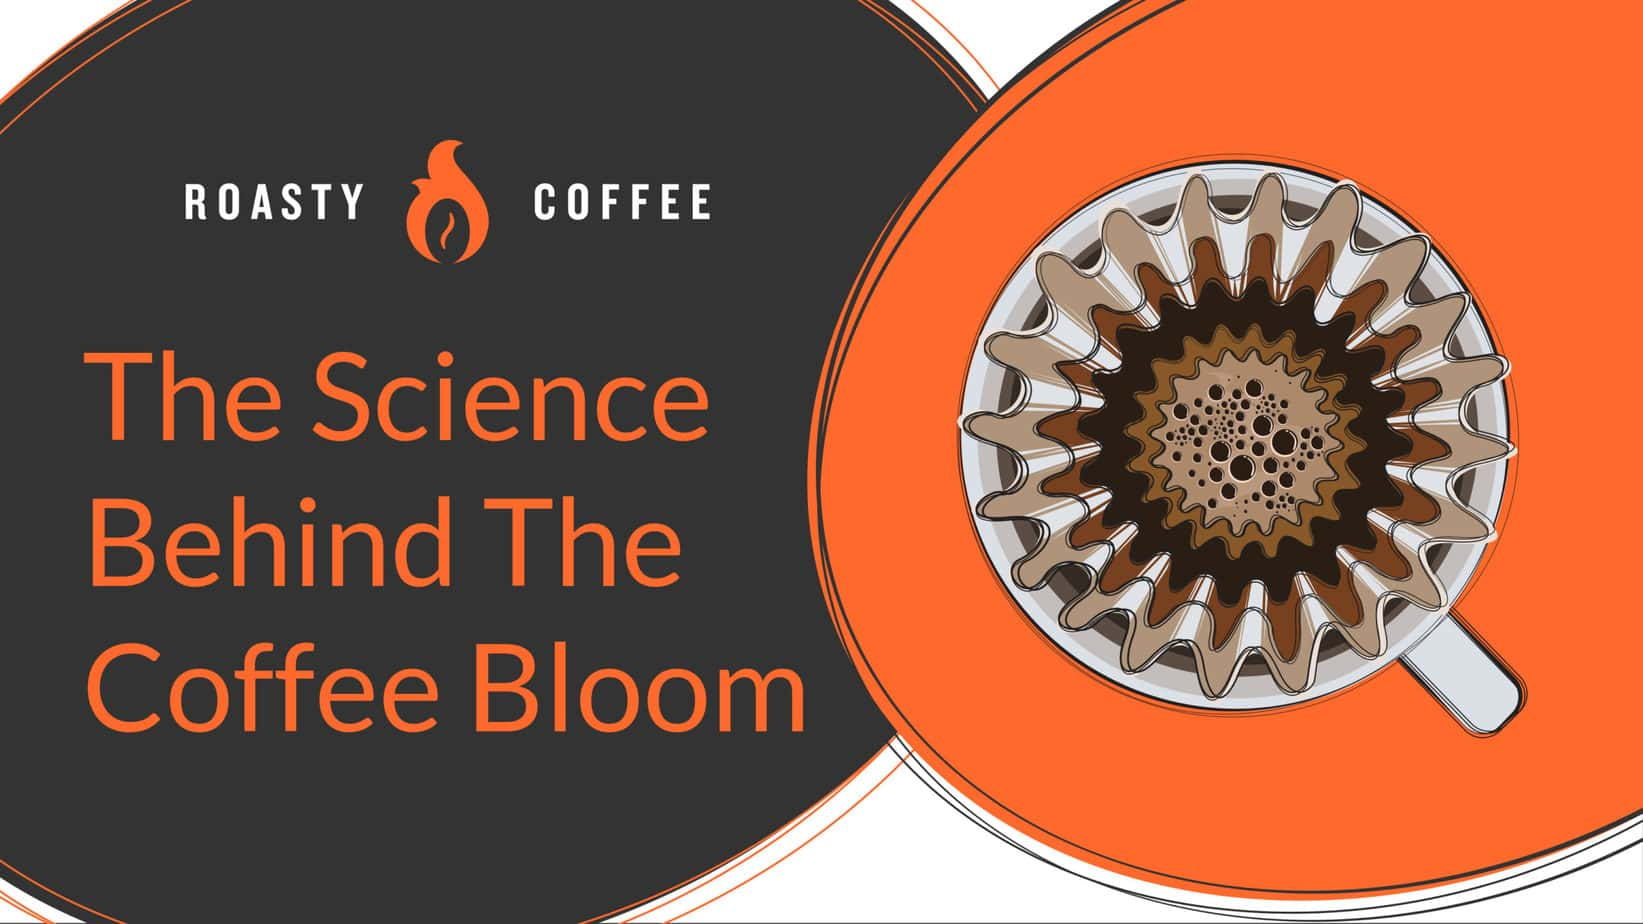 The Science Behind The Coffee Bloom